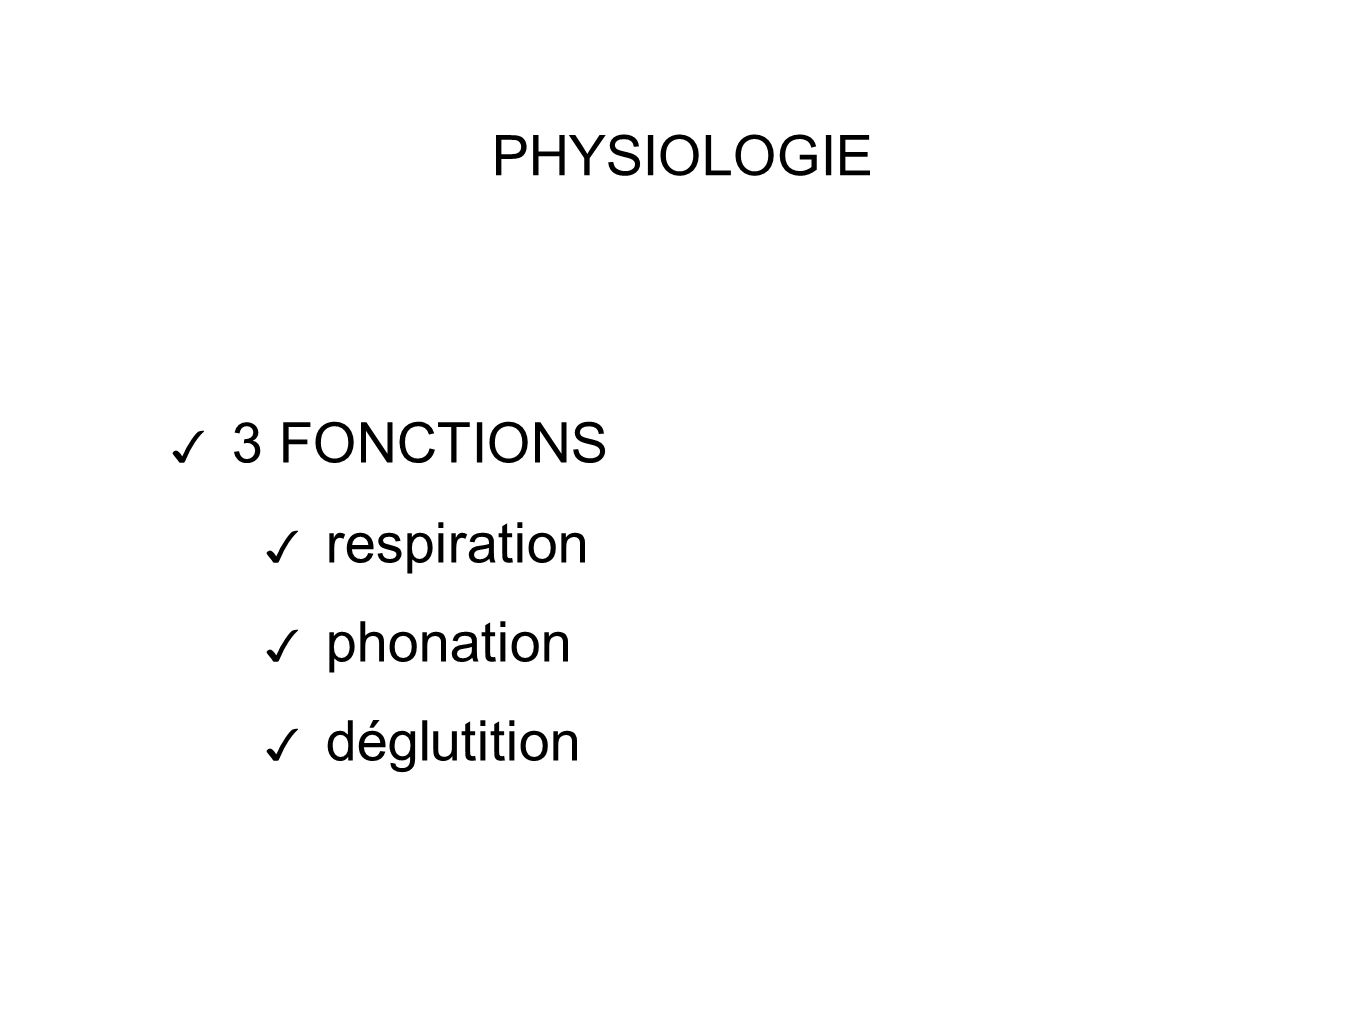 PHYSIOLOGIE 3 FONCTIONS respiration phonation déglutition